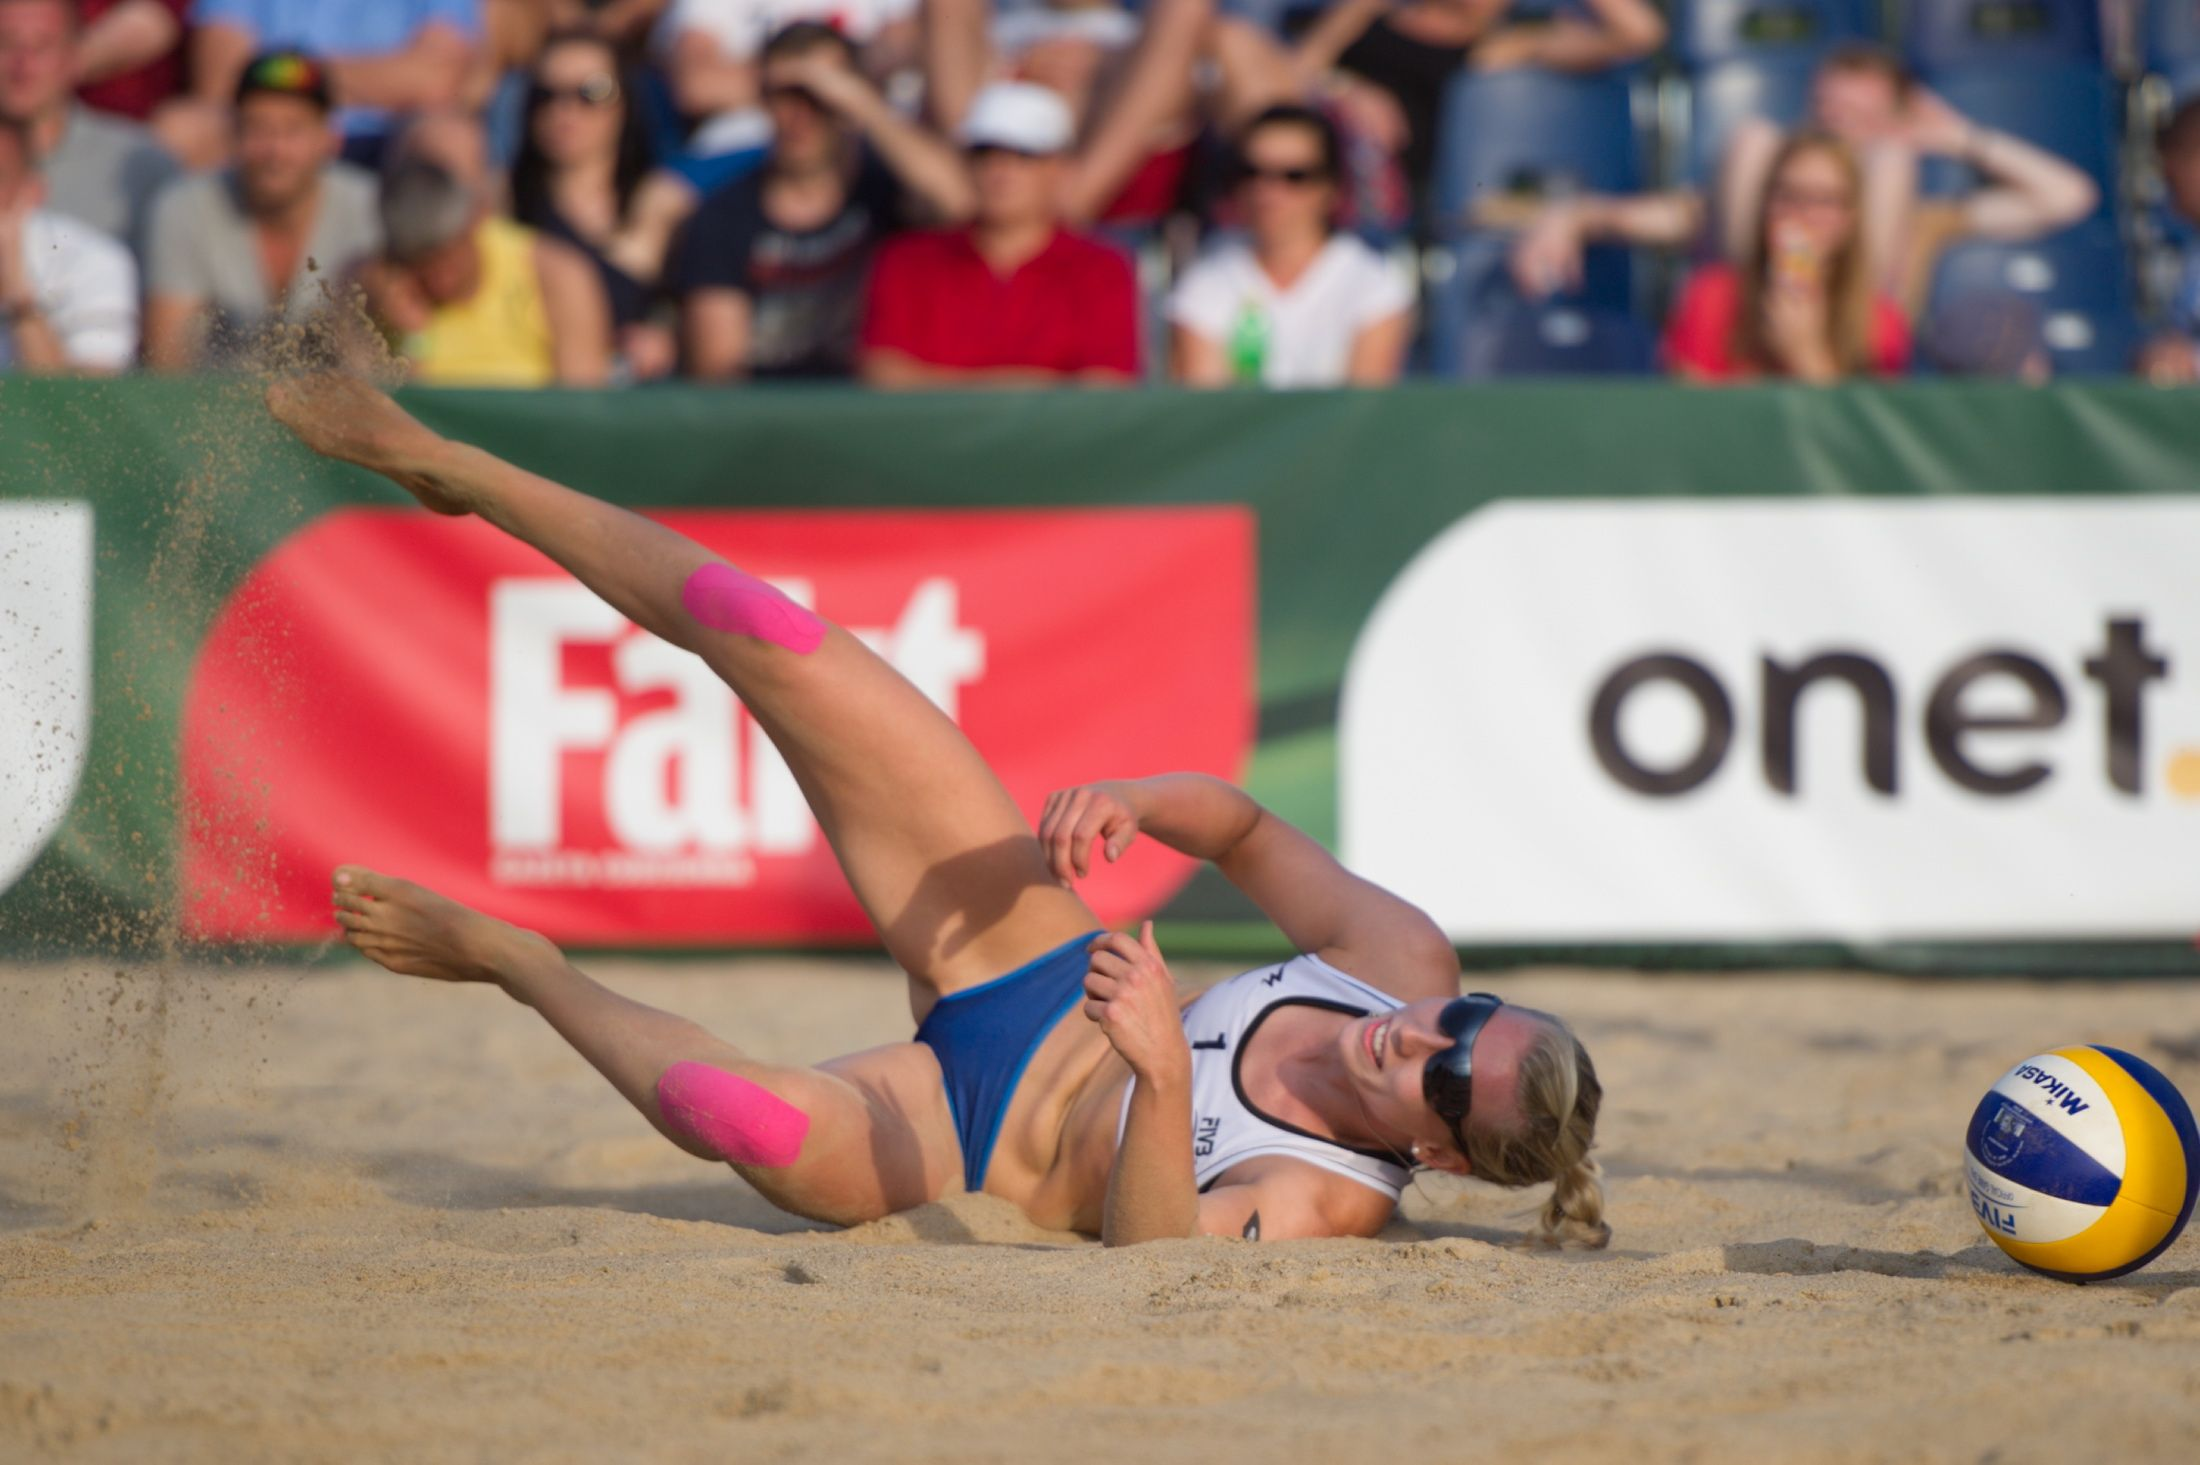 Germany Karla Borger Narrowly Misses The Ball At The Fivb Beach Volleyball World Championships 2013